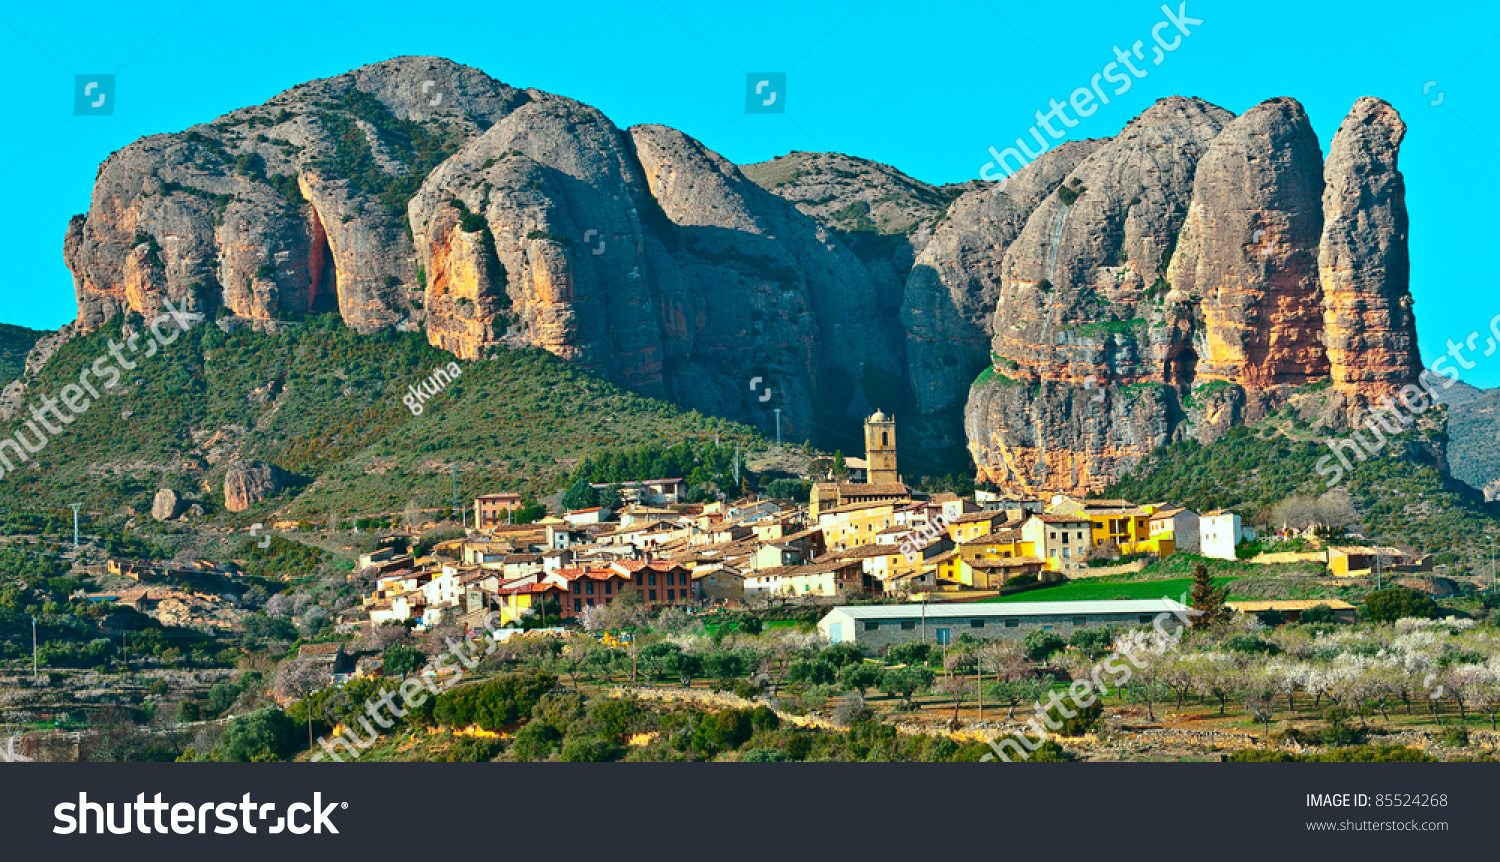 Rocks In Spanish Part - 41: Spanish Medieval Village At The Foot Of The Rocks In The Pyrenees